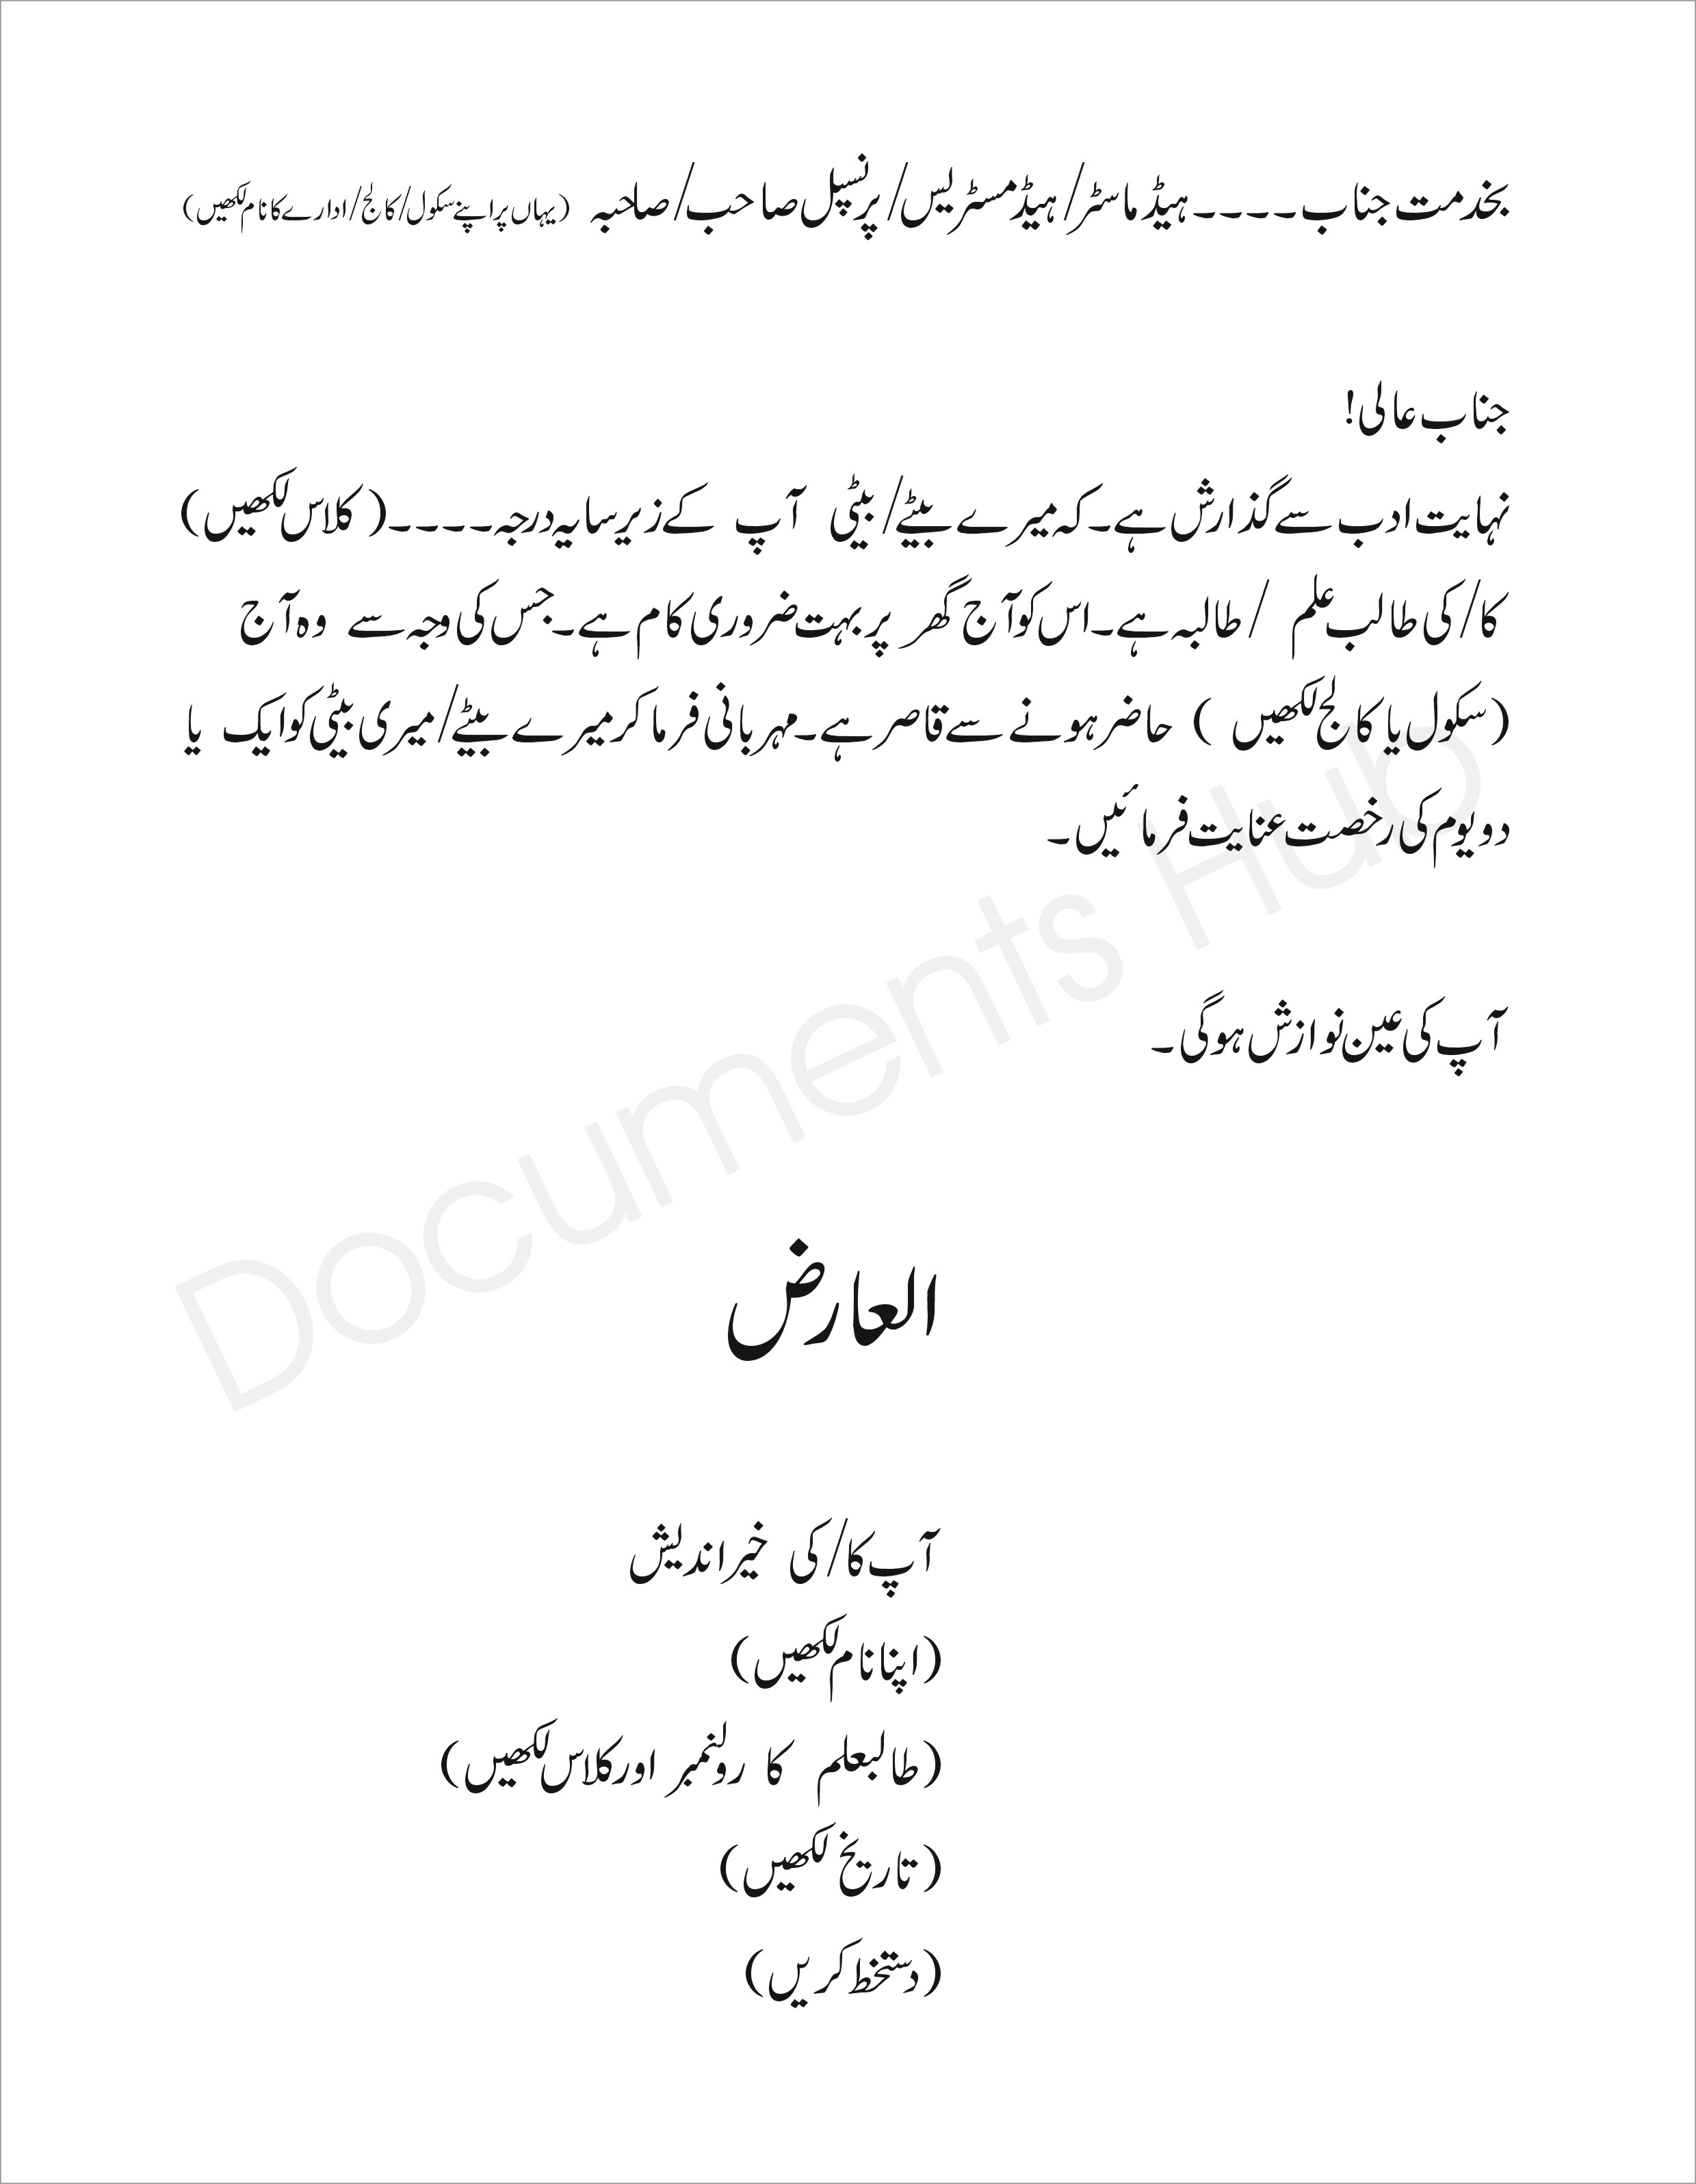 Application For Urgent Piece Of Work In Urdu 1